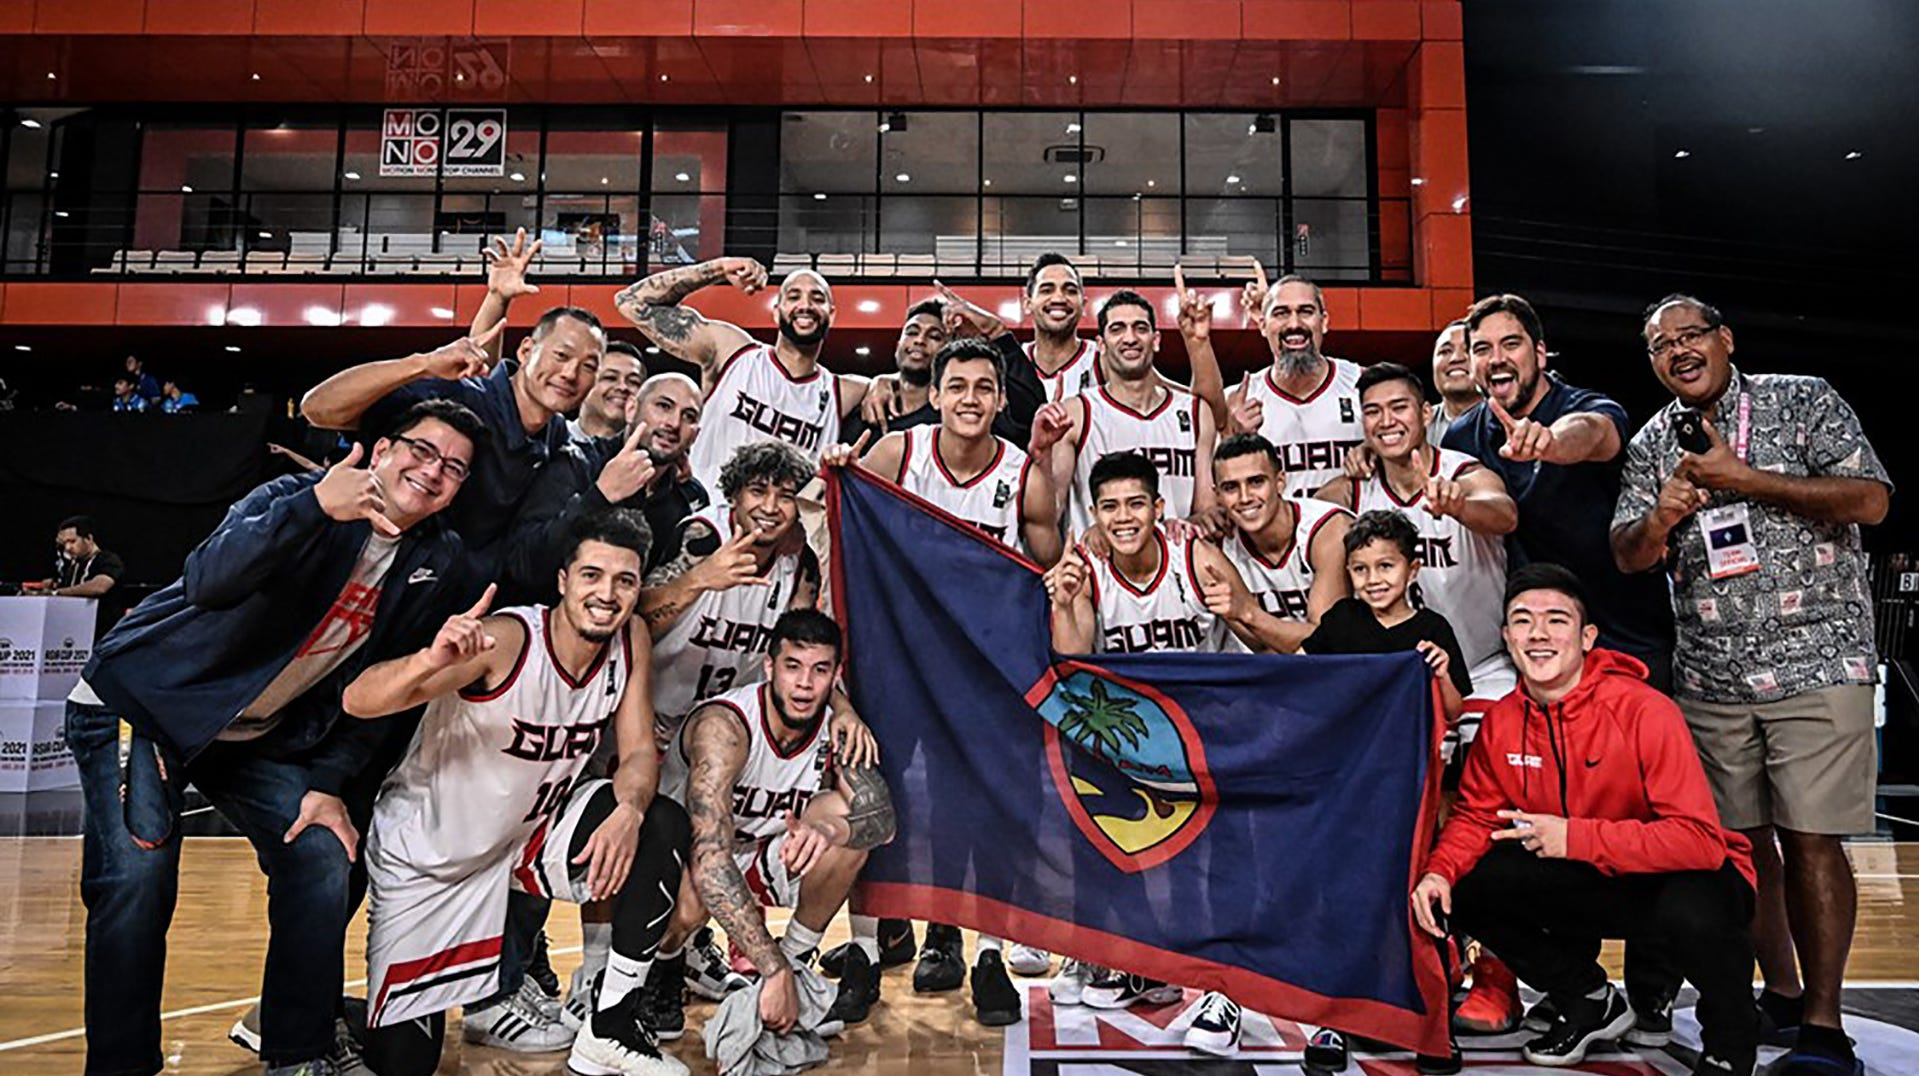 Team Guam hoists the island icon before the final game against Malaysia. Guam won 101-78 to complete a 6-0 sweep of all teams in  Asia's Eastern Division and move on to the qualifier round of the FIBA Asia Cup 2021